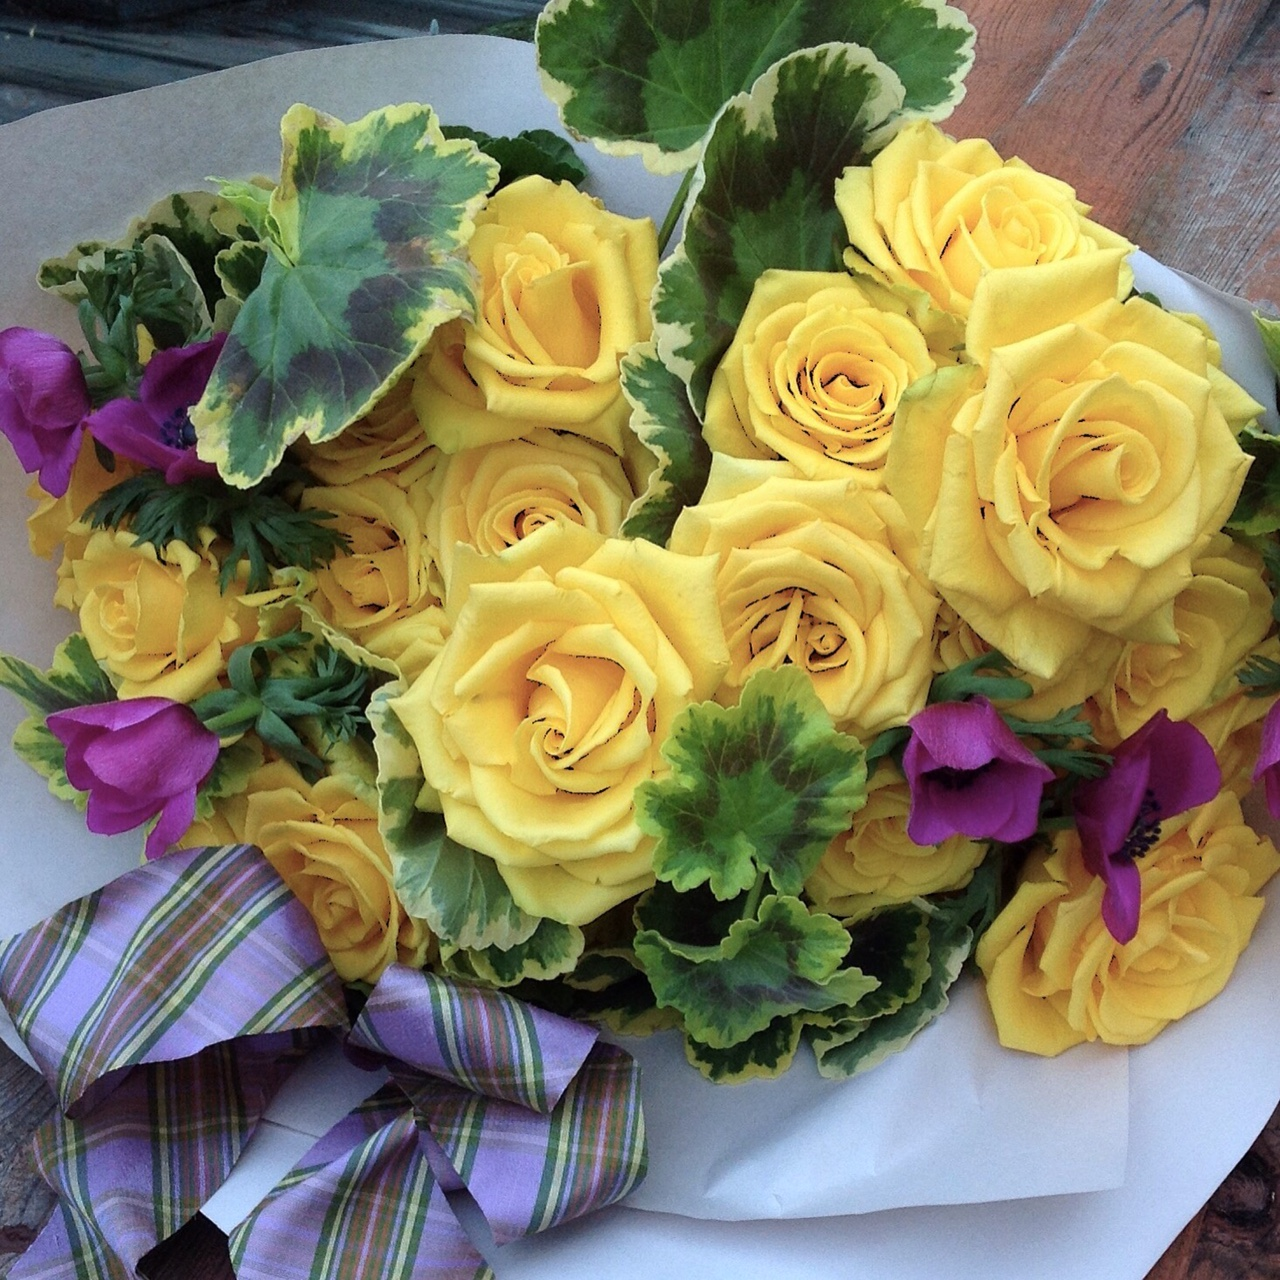 Big and impressive wrapped bouquets  starting at $150 (as shown $150)